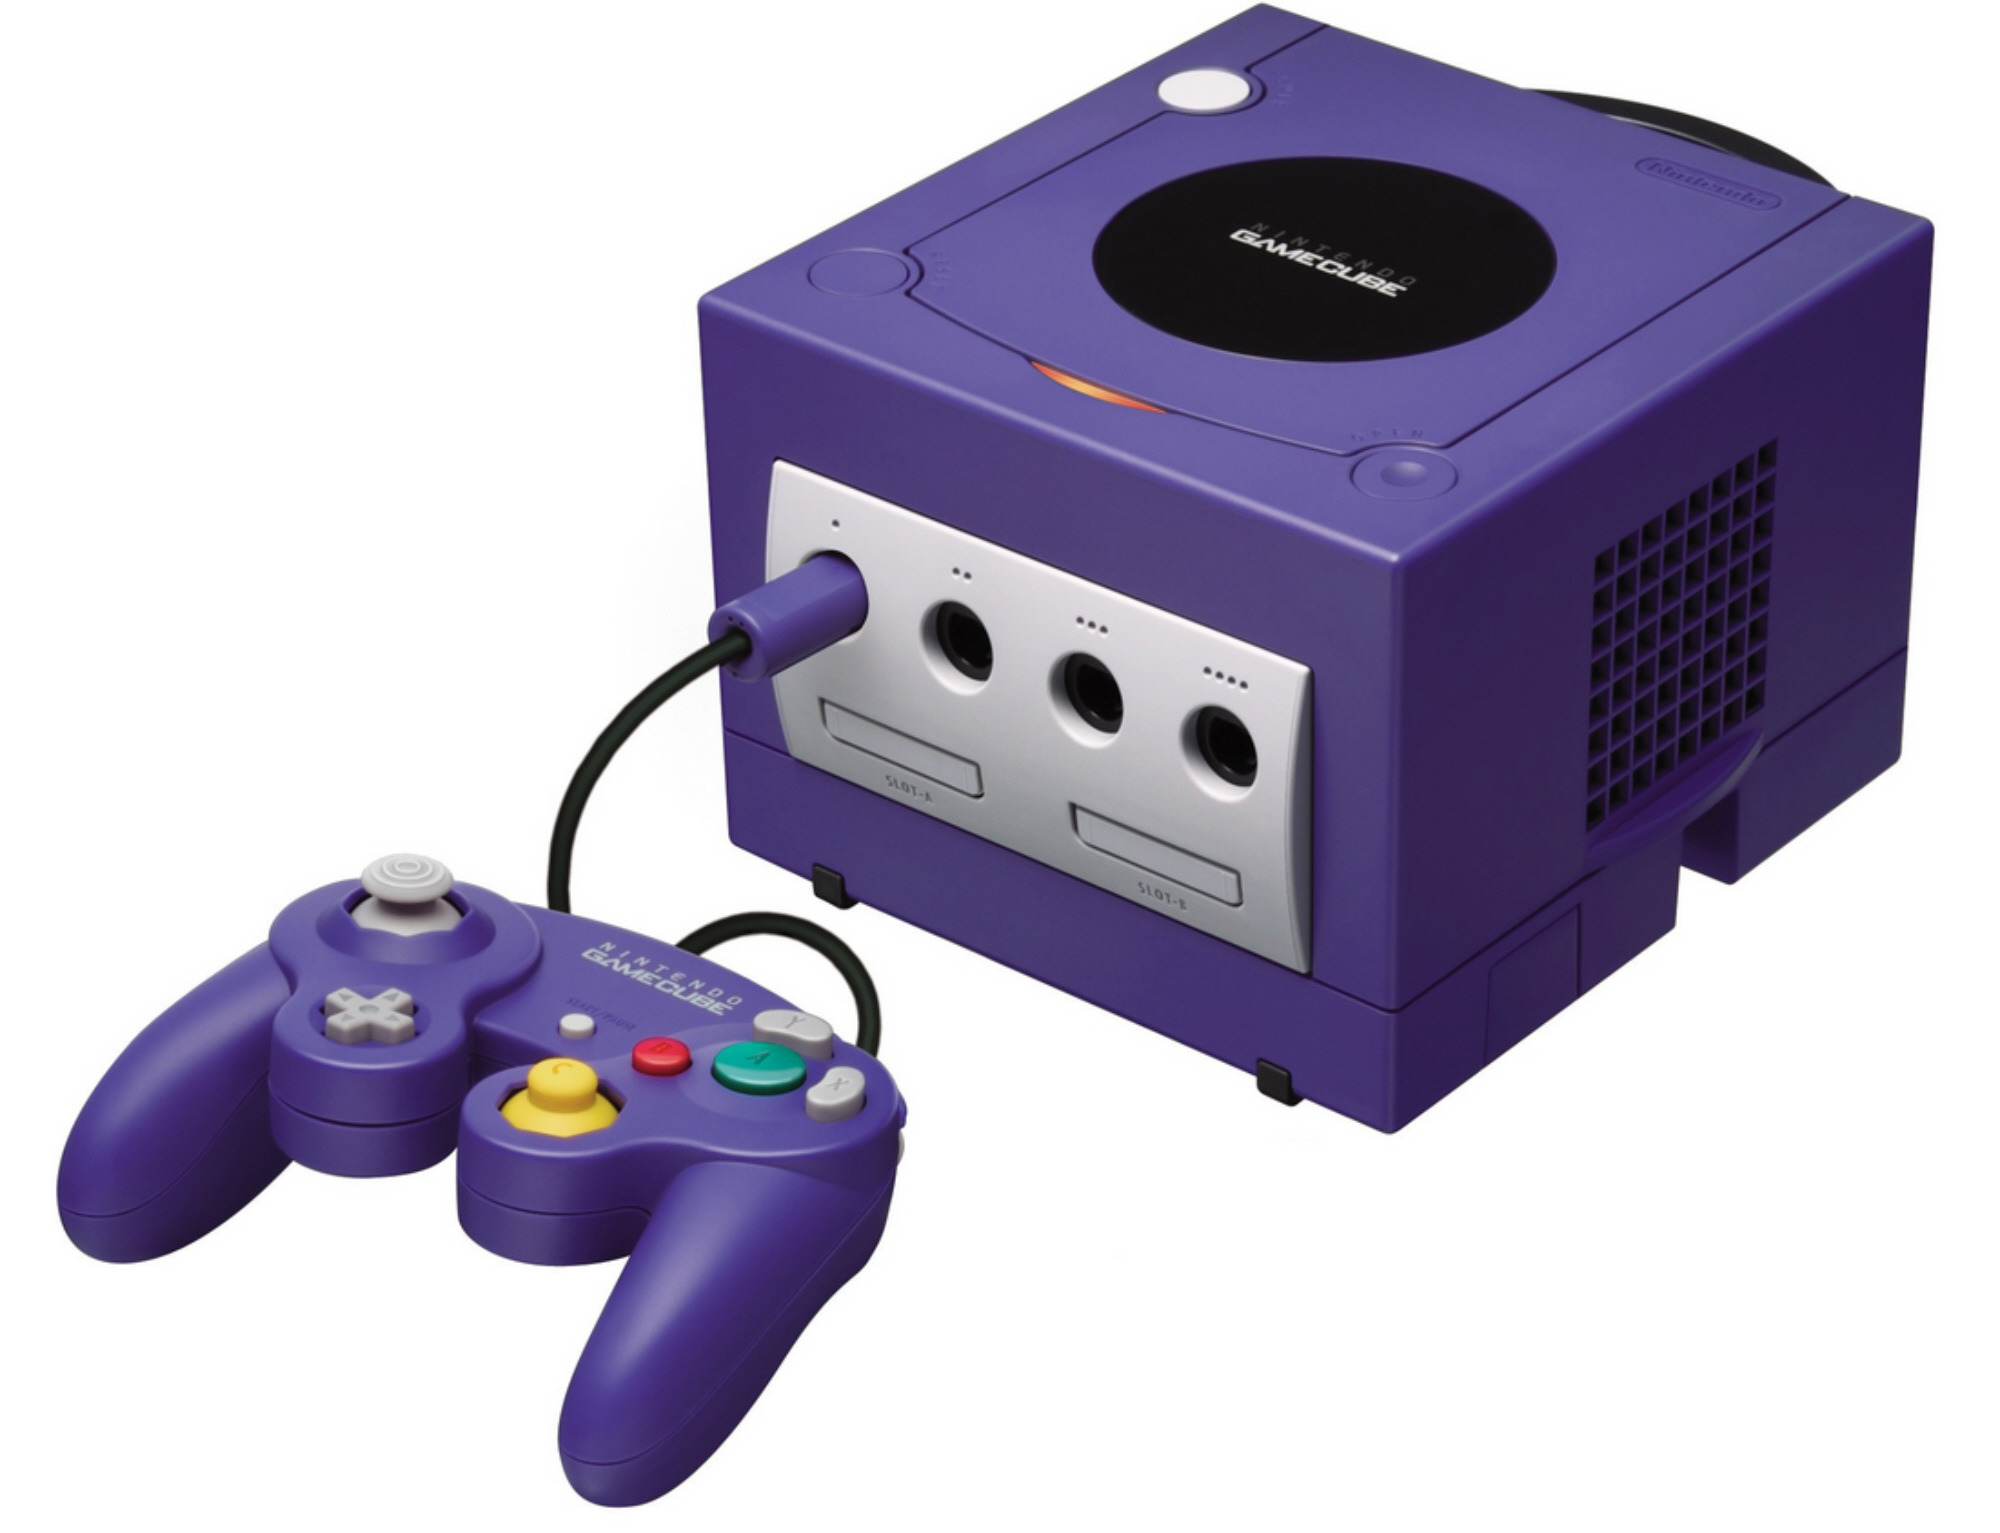 Do Wii games work on the GameCube? - Answers